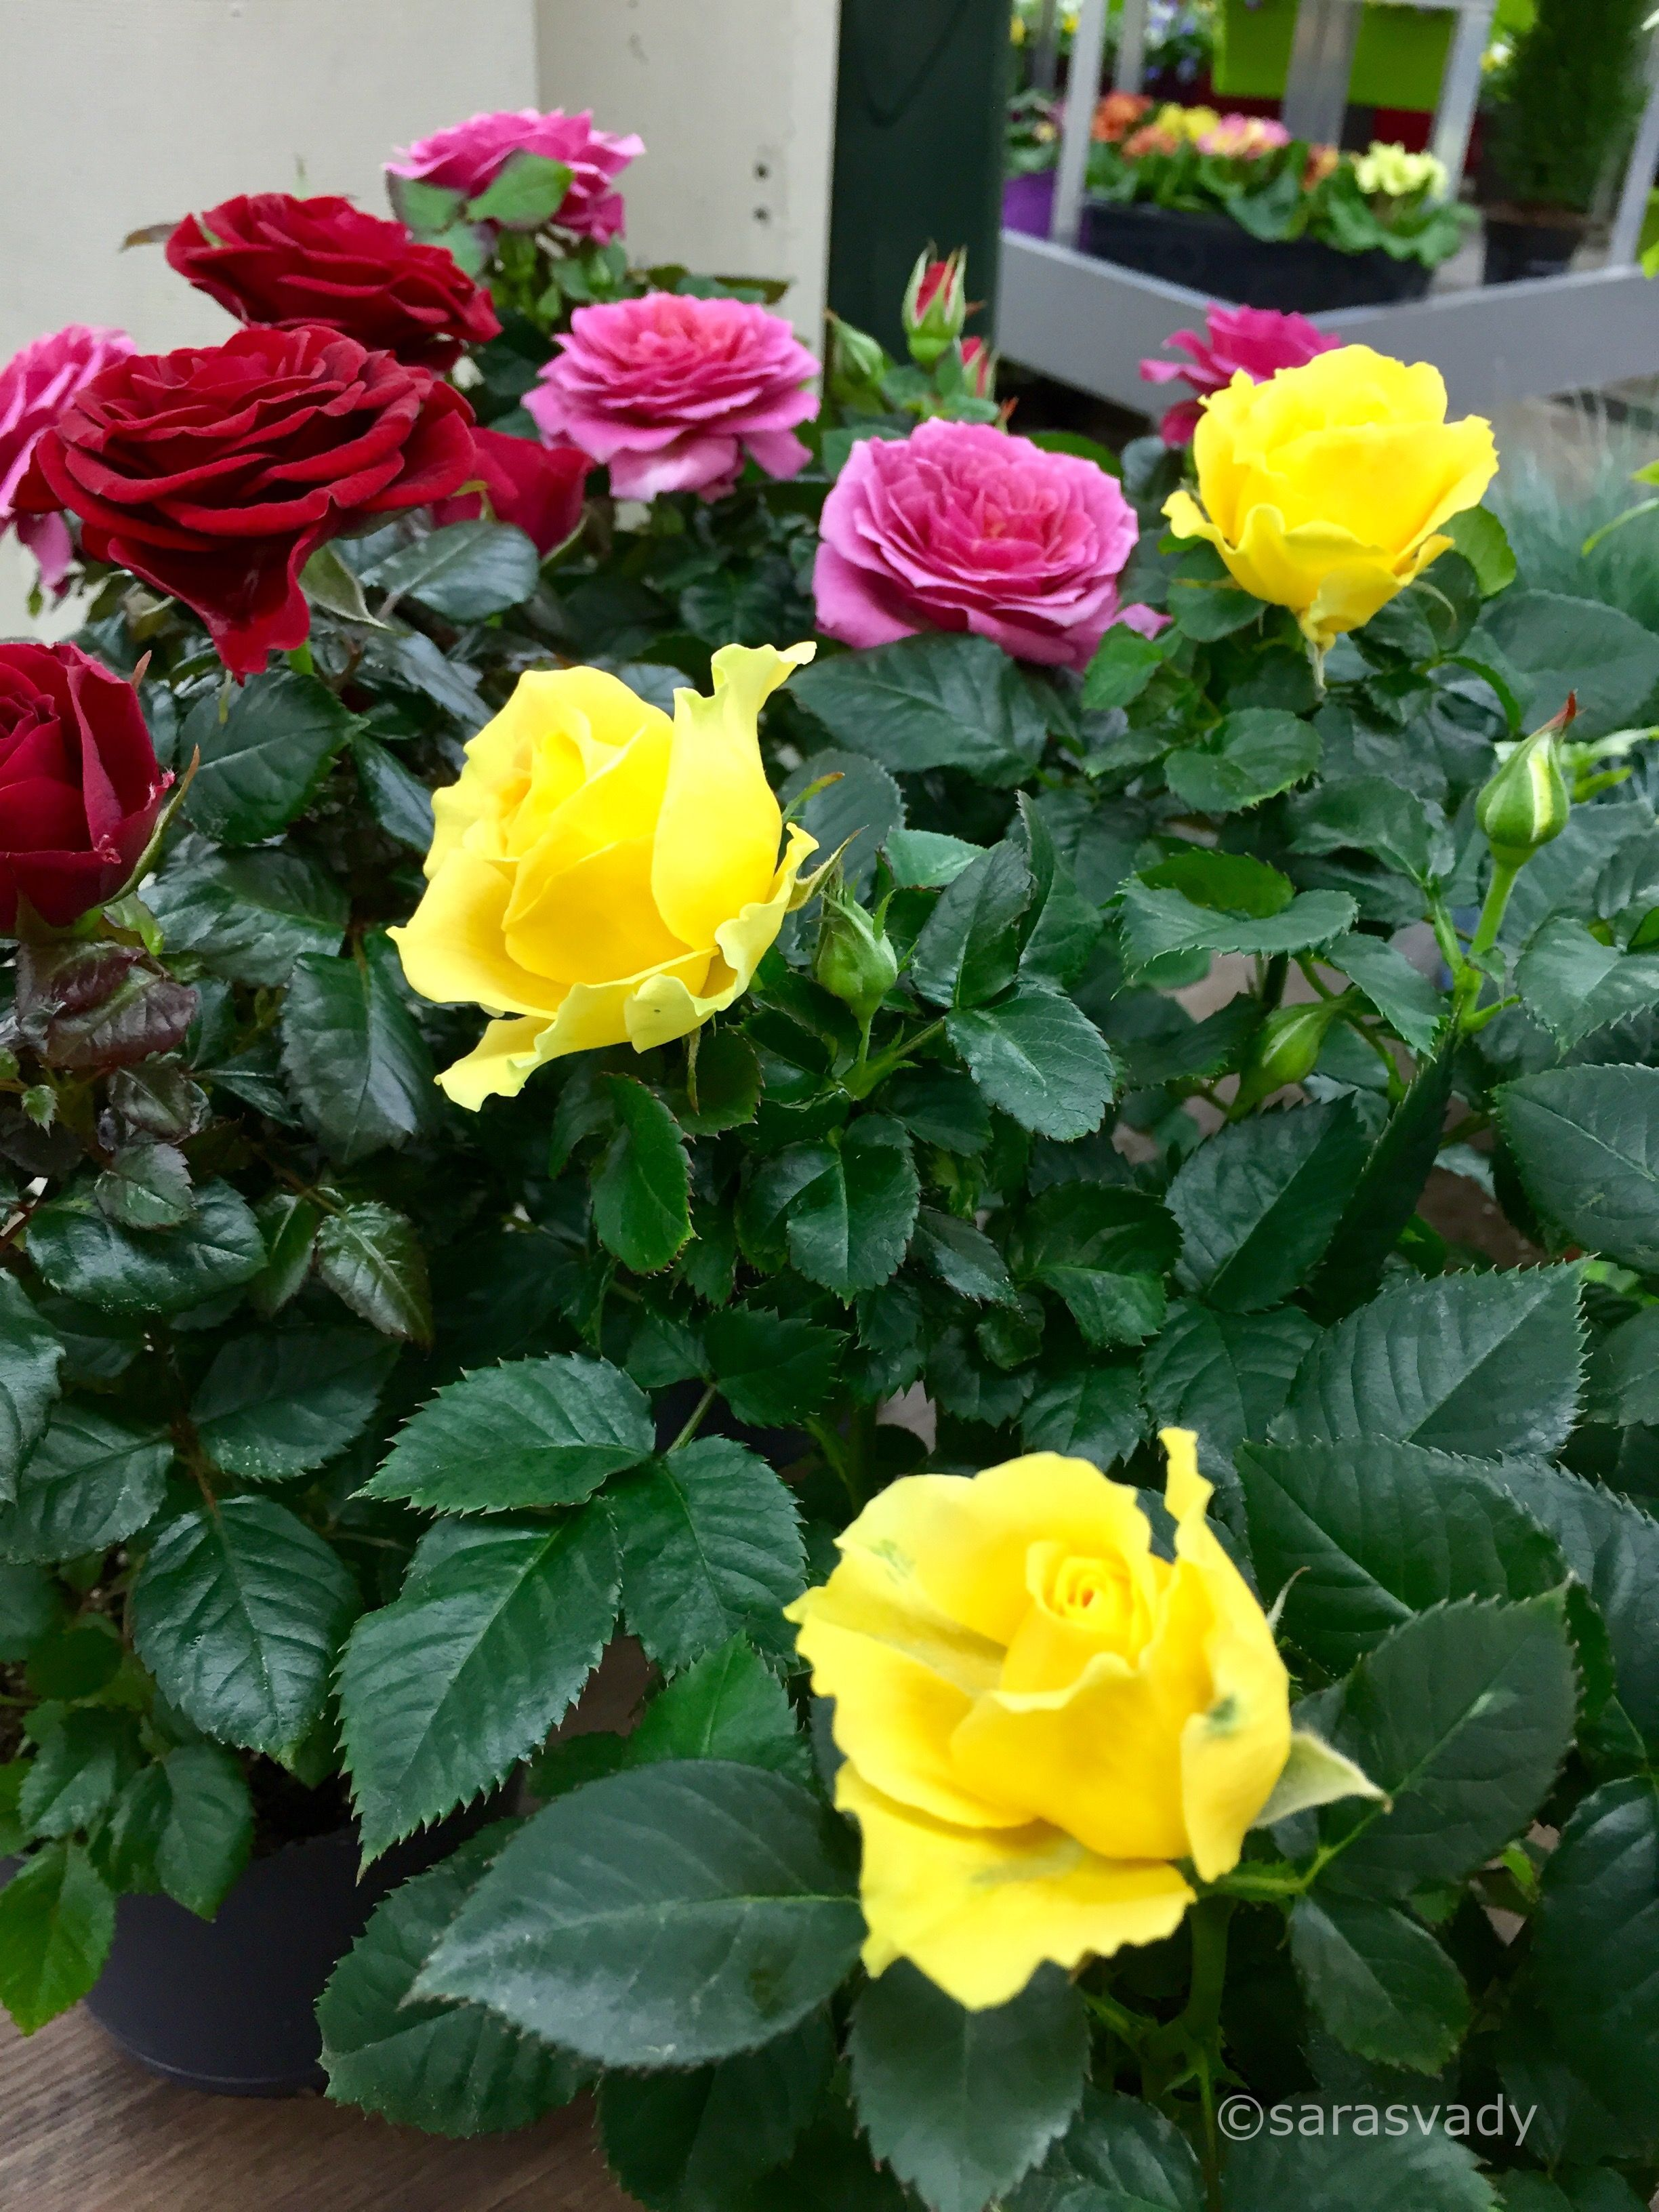 Pin By Douangta Visetsouk On I Love Rose Beautiful Roses Beautiful Flowers Rose Flower